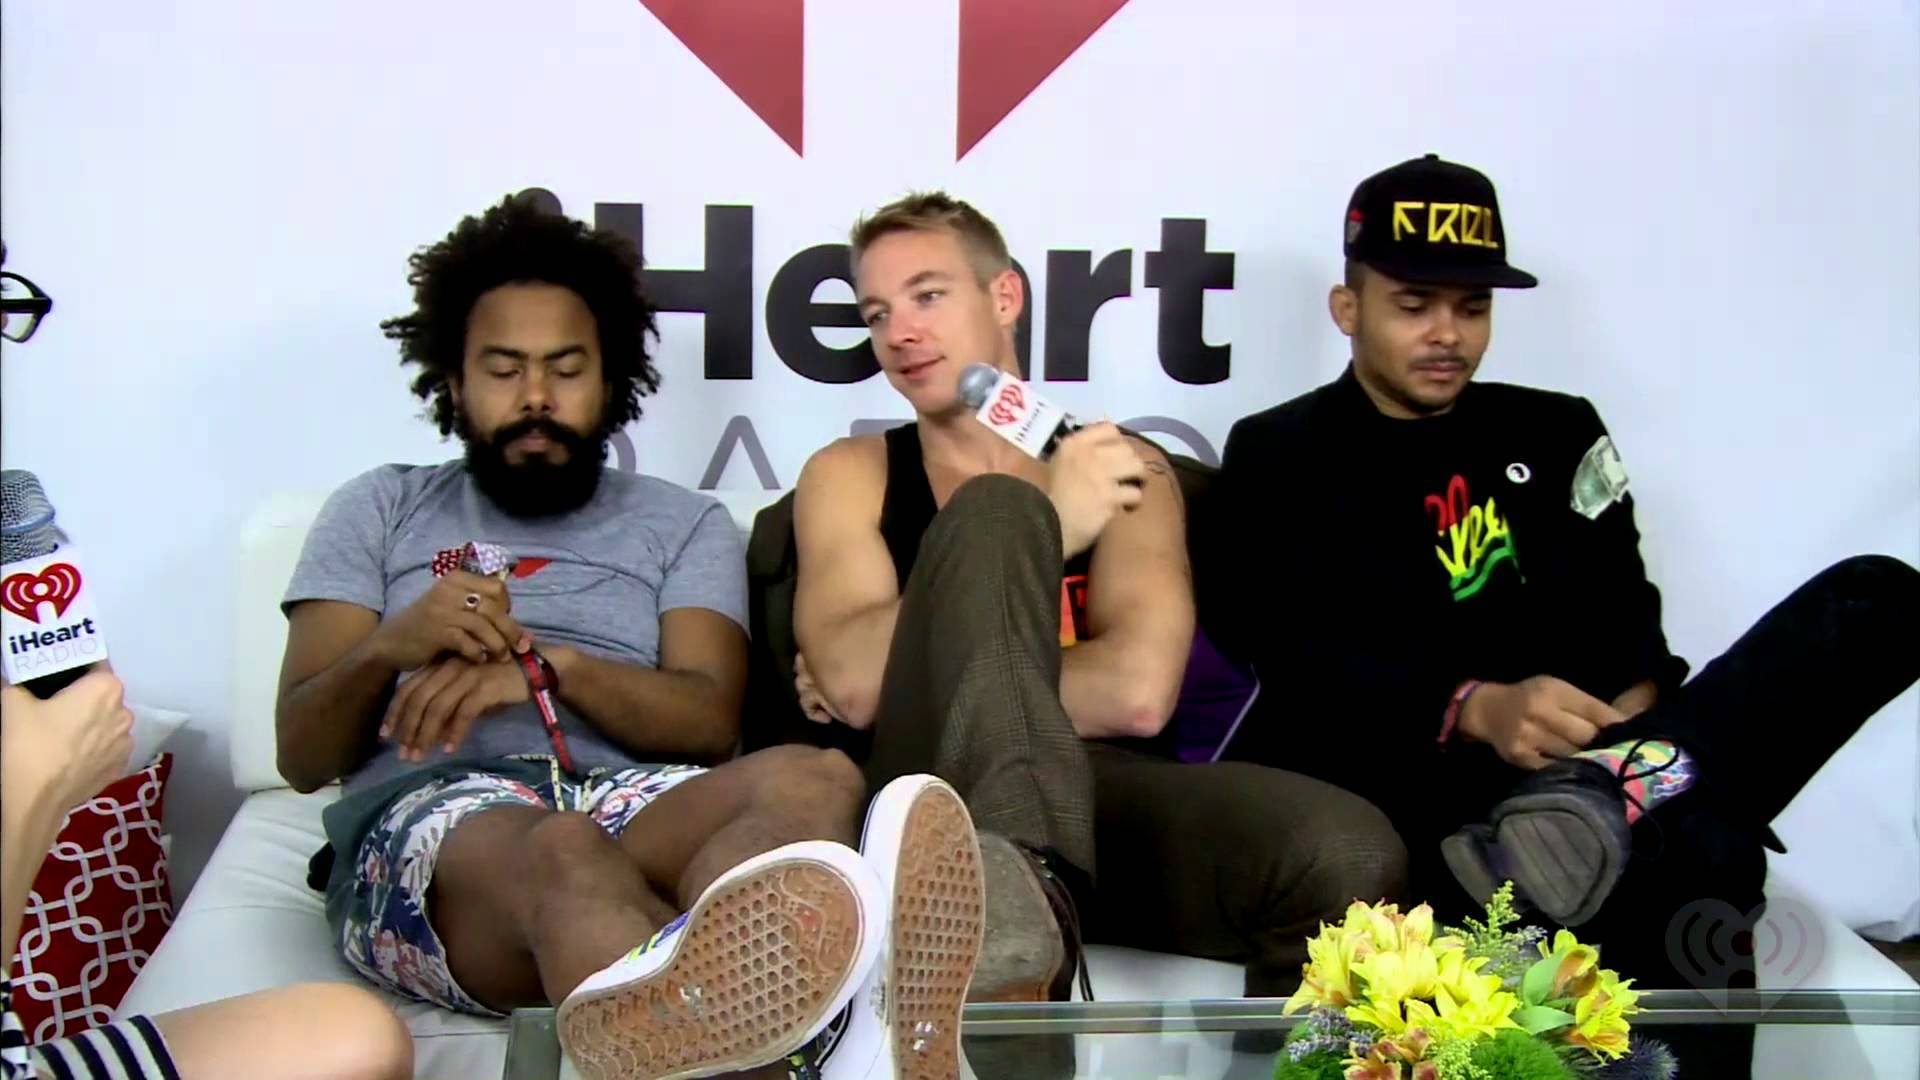 Major Lazer Hd Desktop